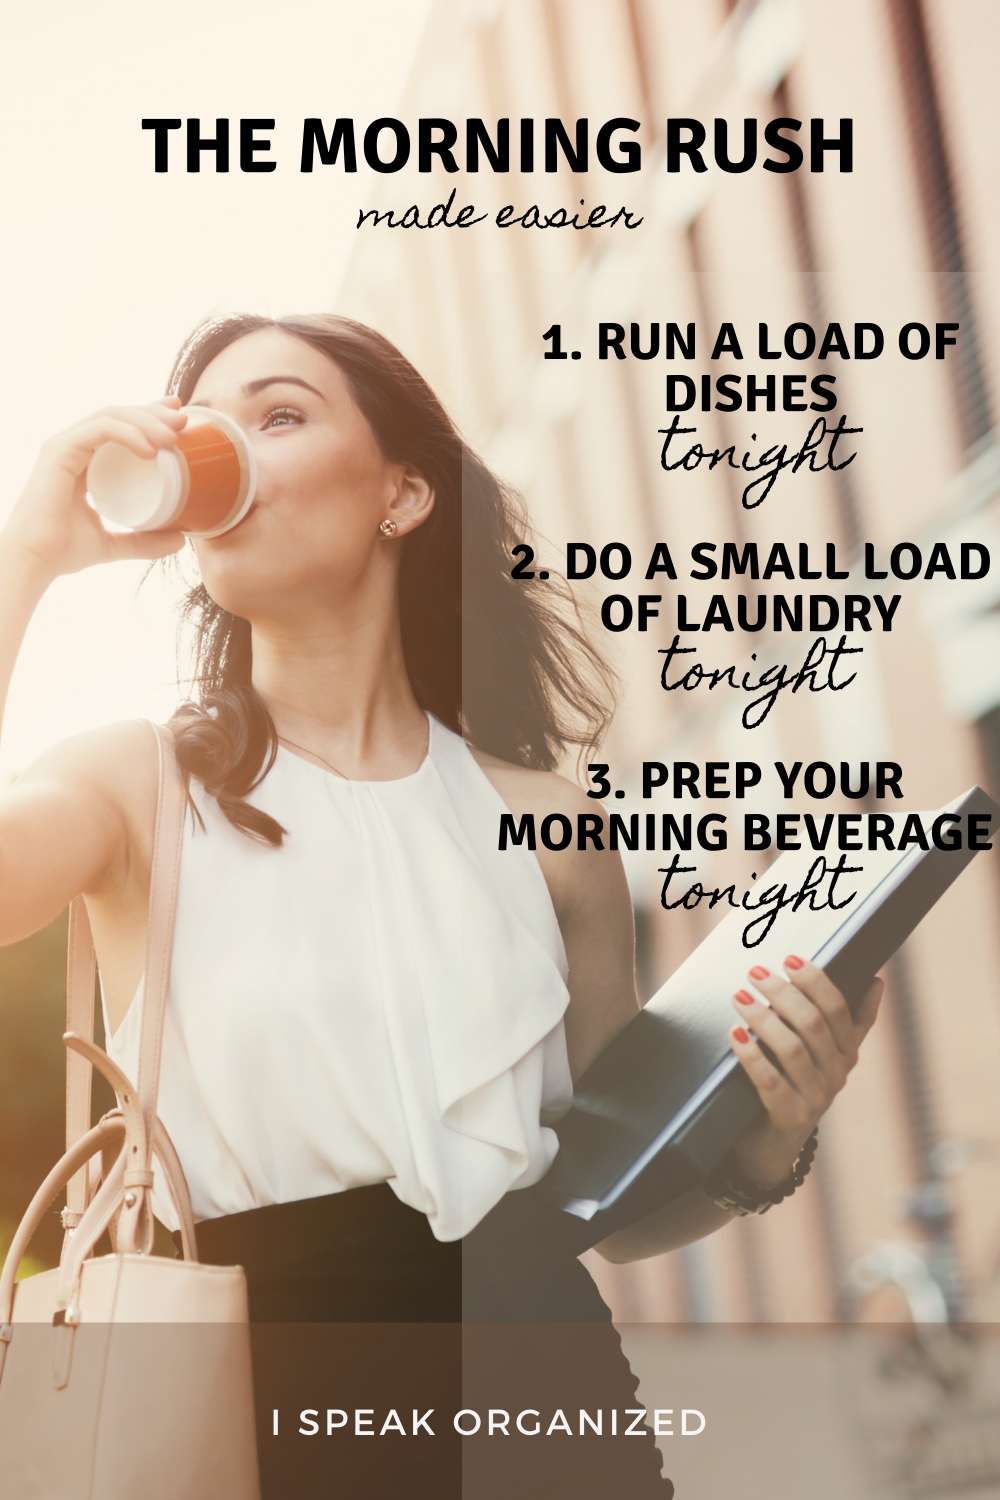 3 habits to add to your night time routine that will certainly make for a better morning. Learn more productivity tips and home organization ideas for free at www.ispeakorganized.com/blog #nightroutineideas #bedtimeroutine